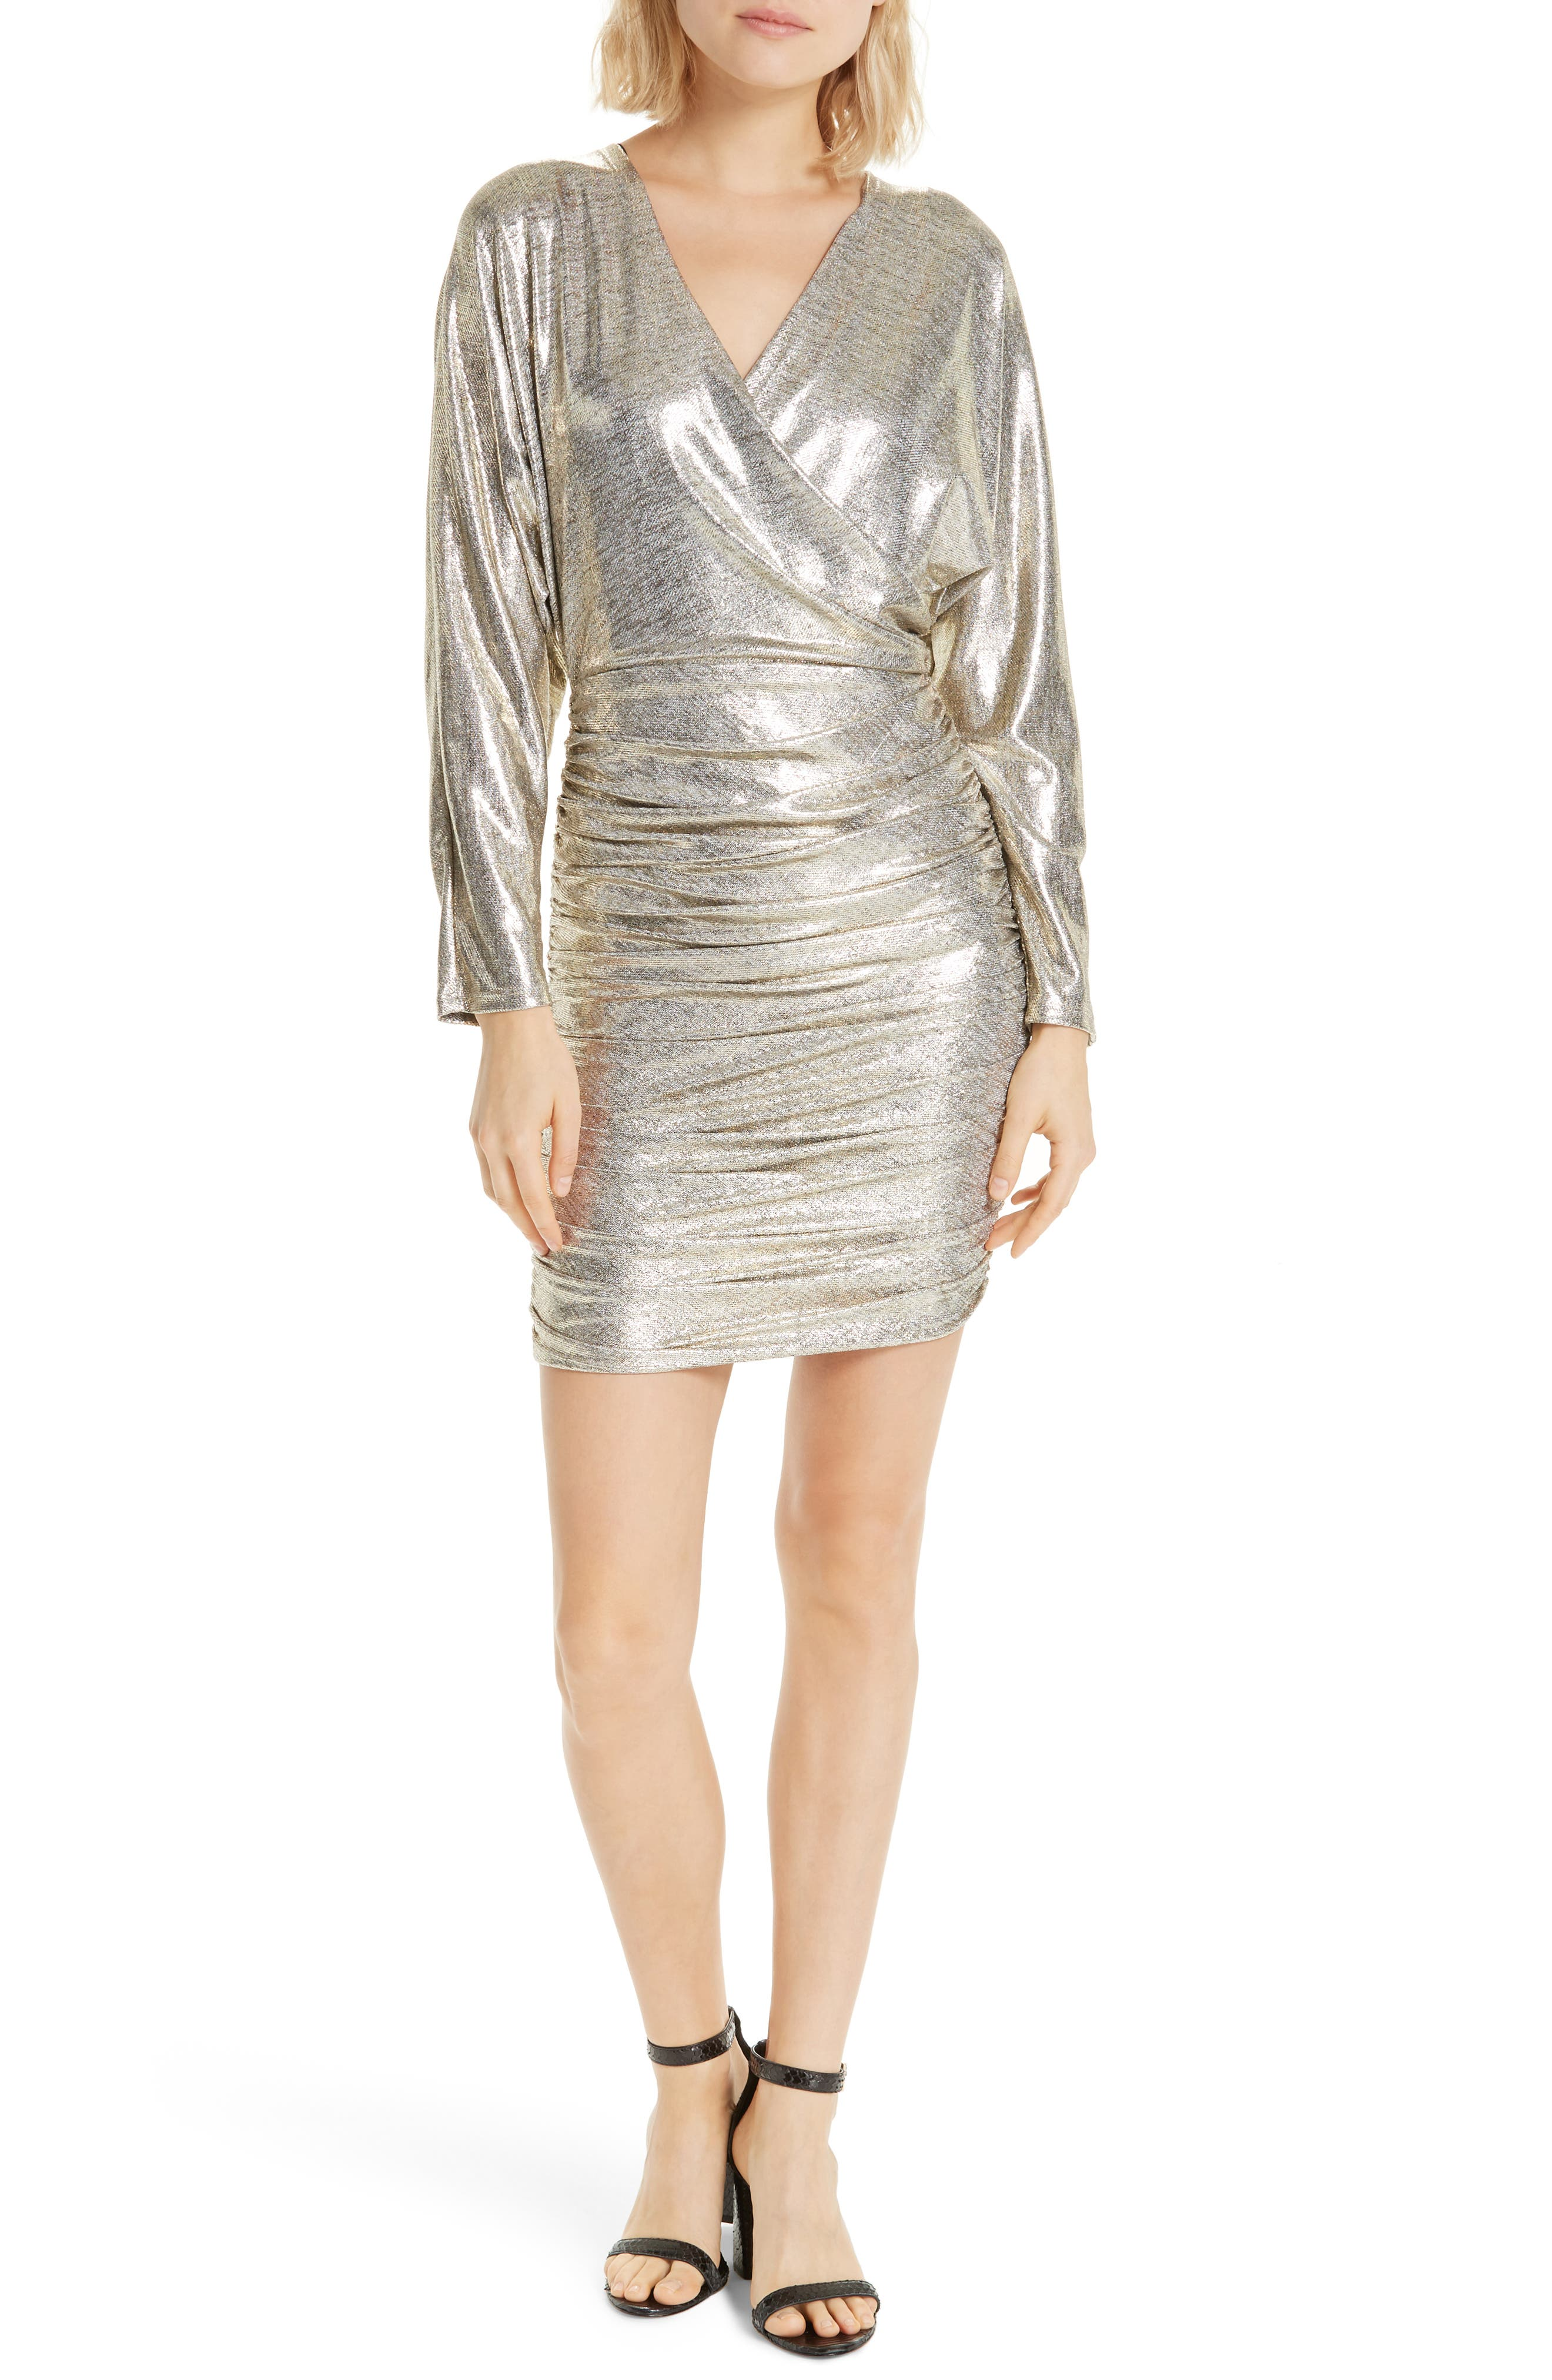 ALICE + OLIVIA, Pace Batwing Sleeve Party Dress, Main thumbnail 1, color, SILVER